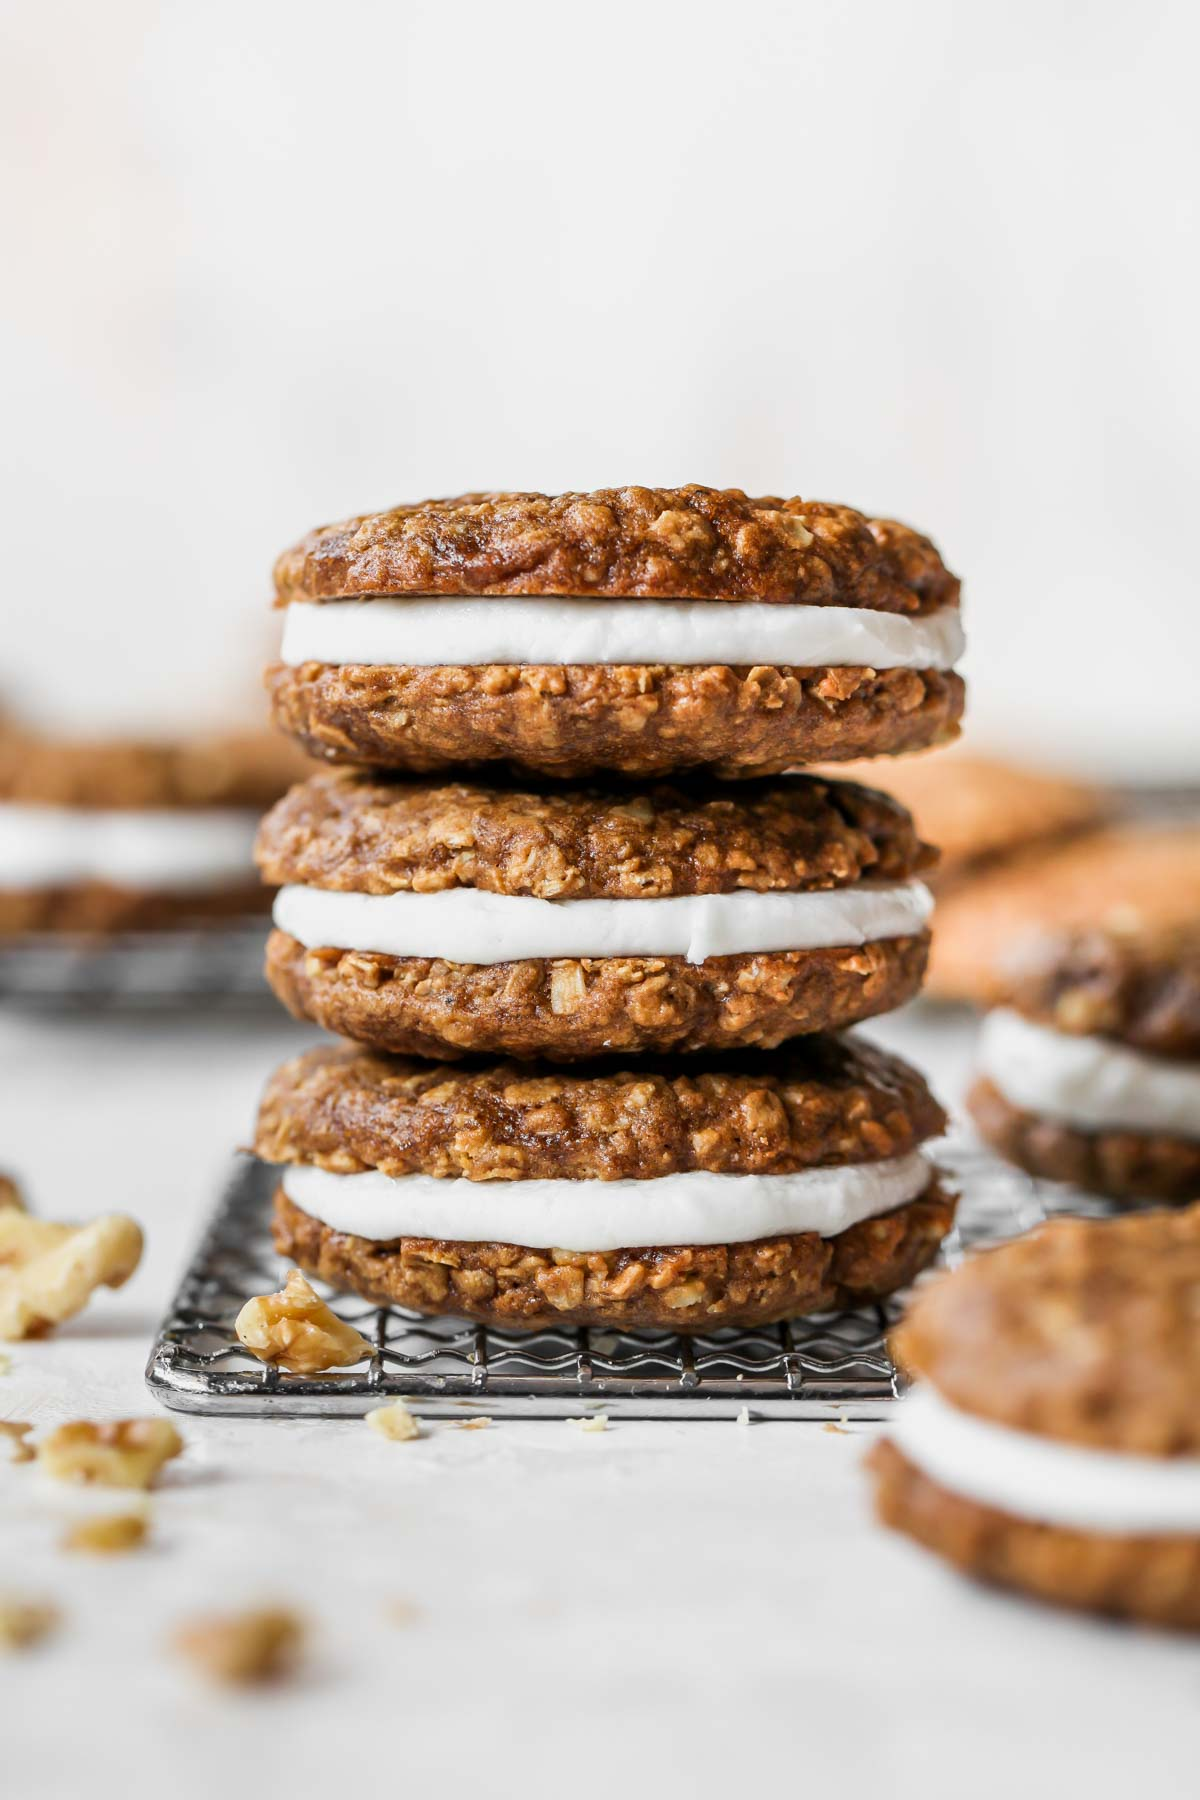 Three oatmeal creme pies stacked on top of each other